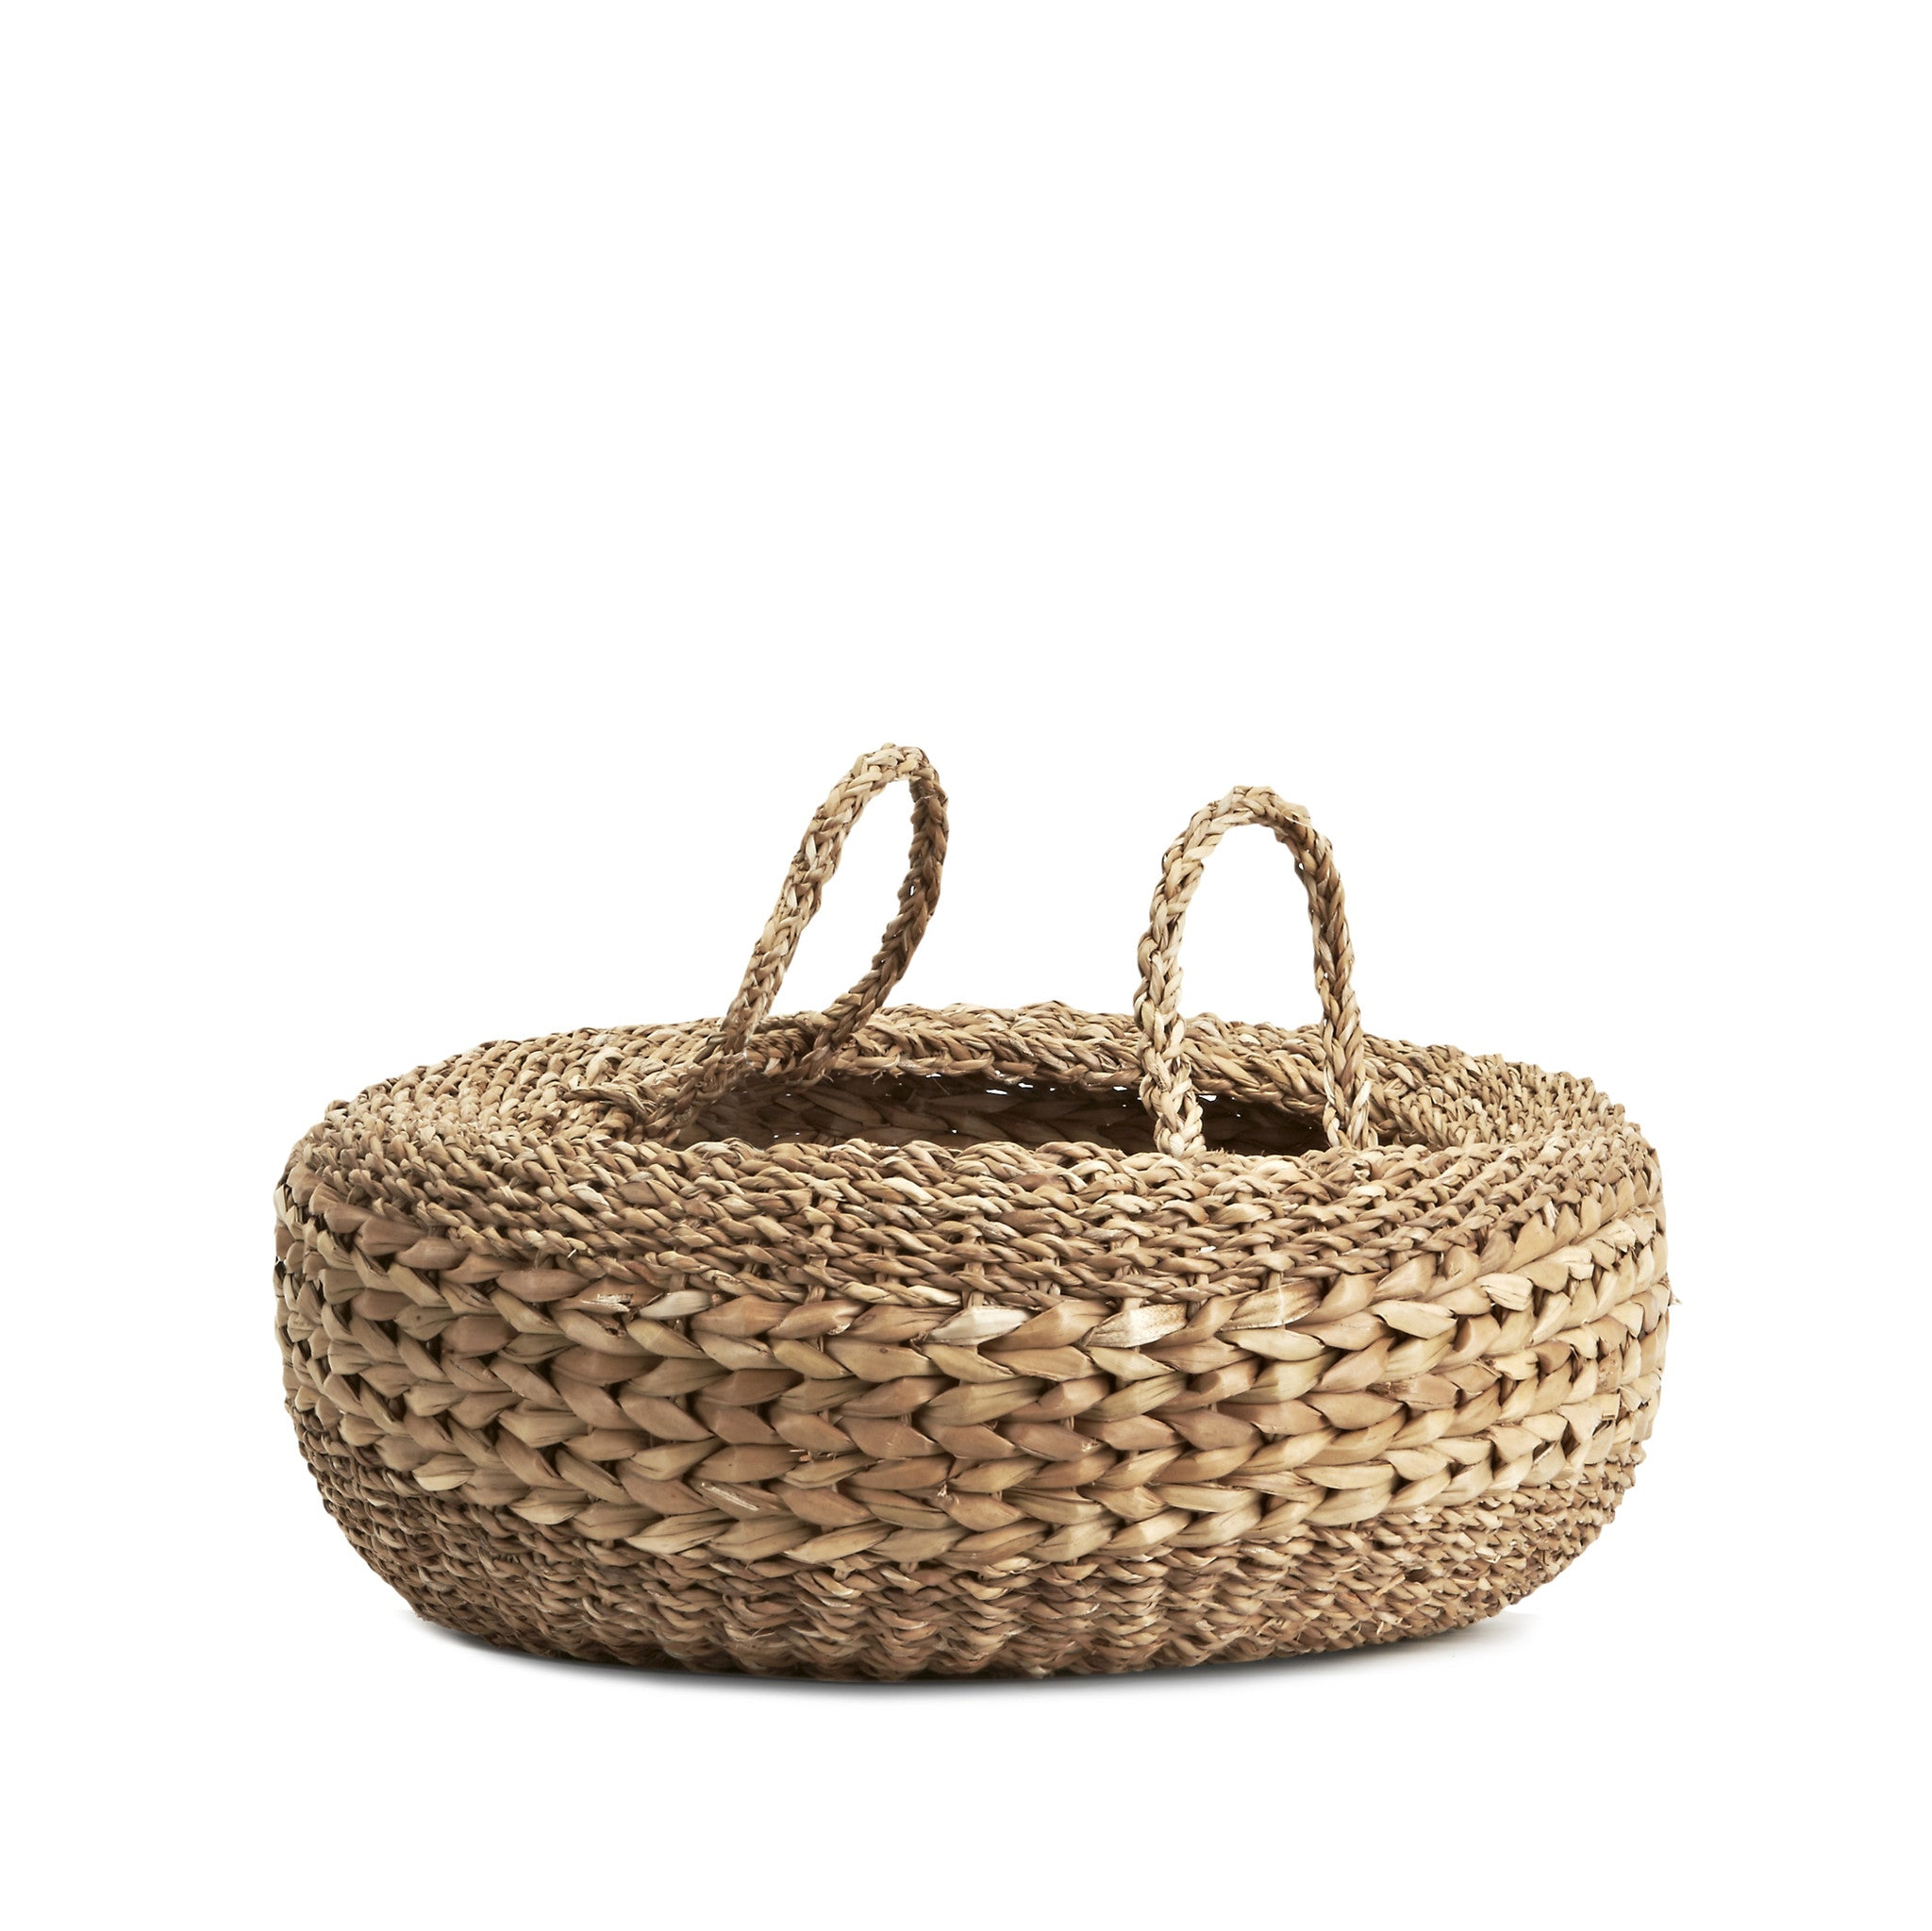 Hogla Large Round Egg Basket